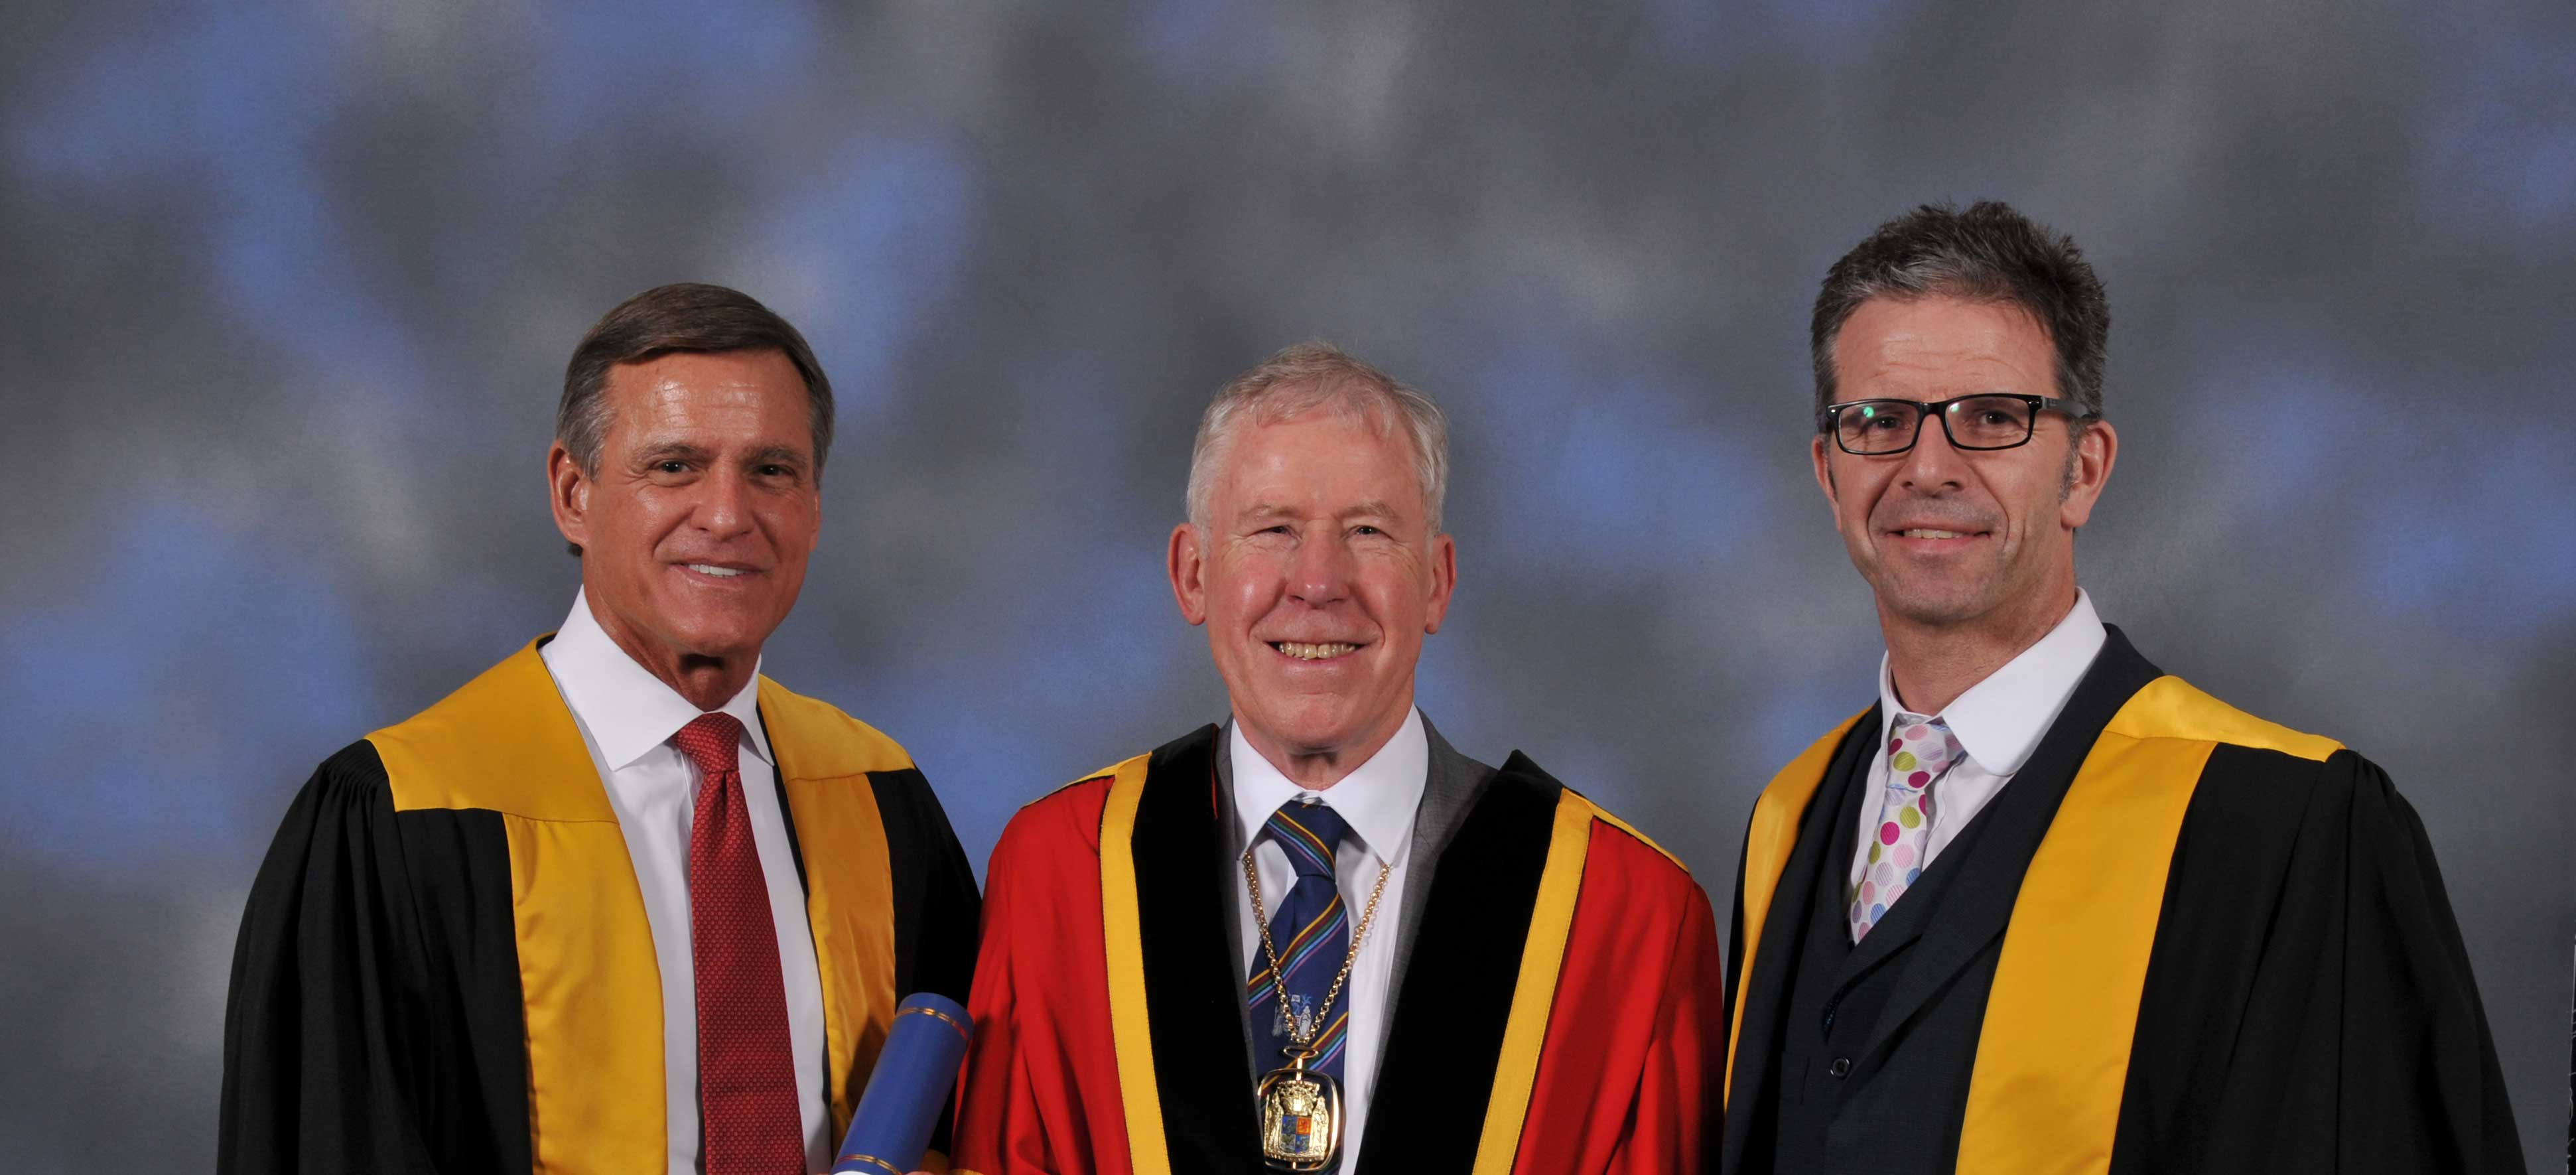 Royal College of Physicians and Surgeons of Glasgow Selects Dr. Clanton as an Honorary Fellow